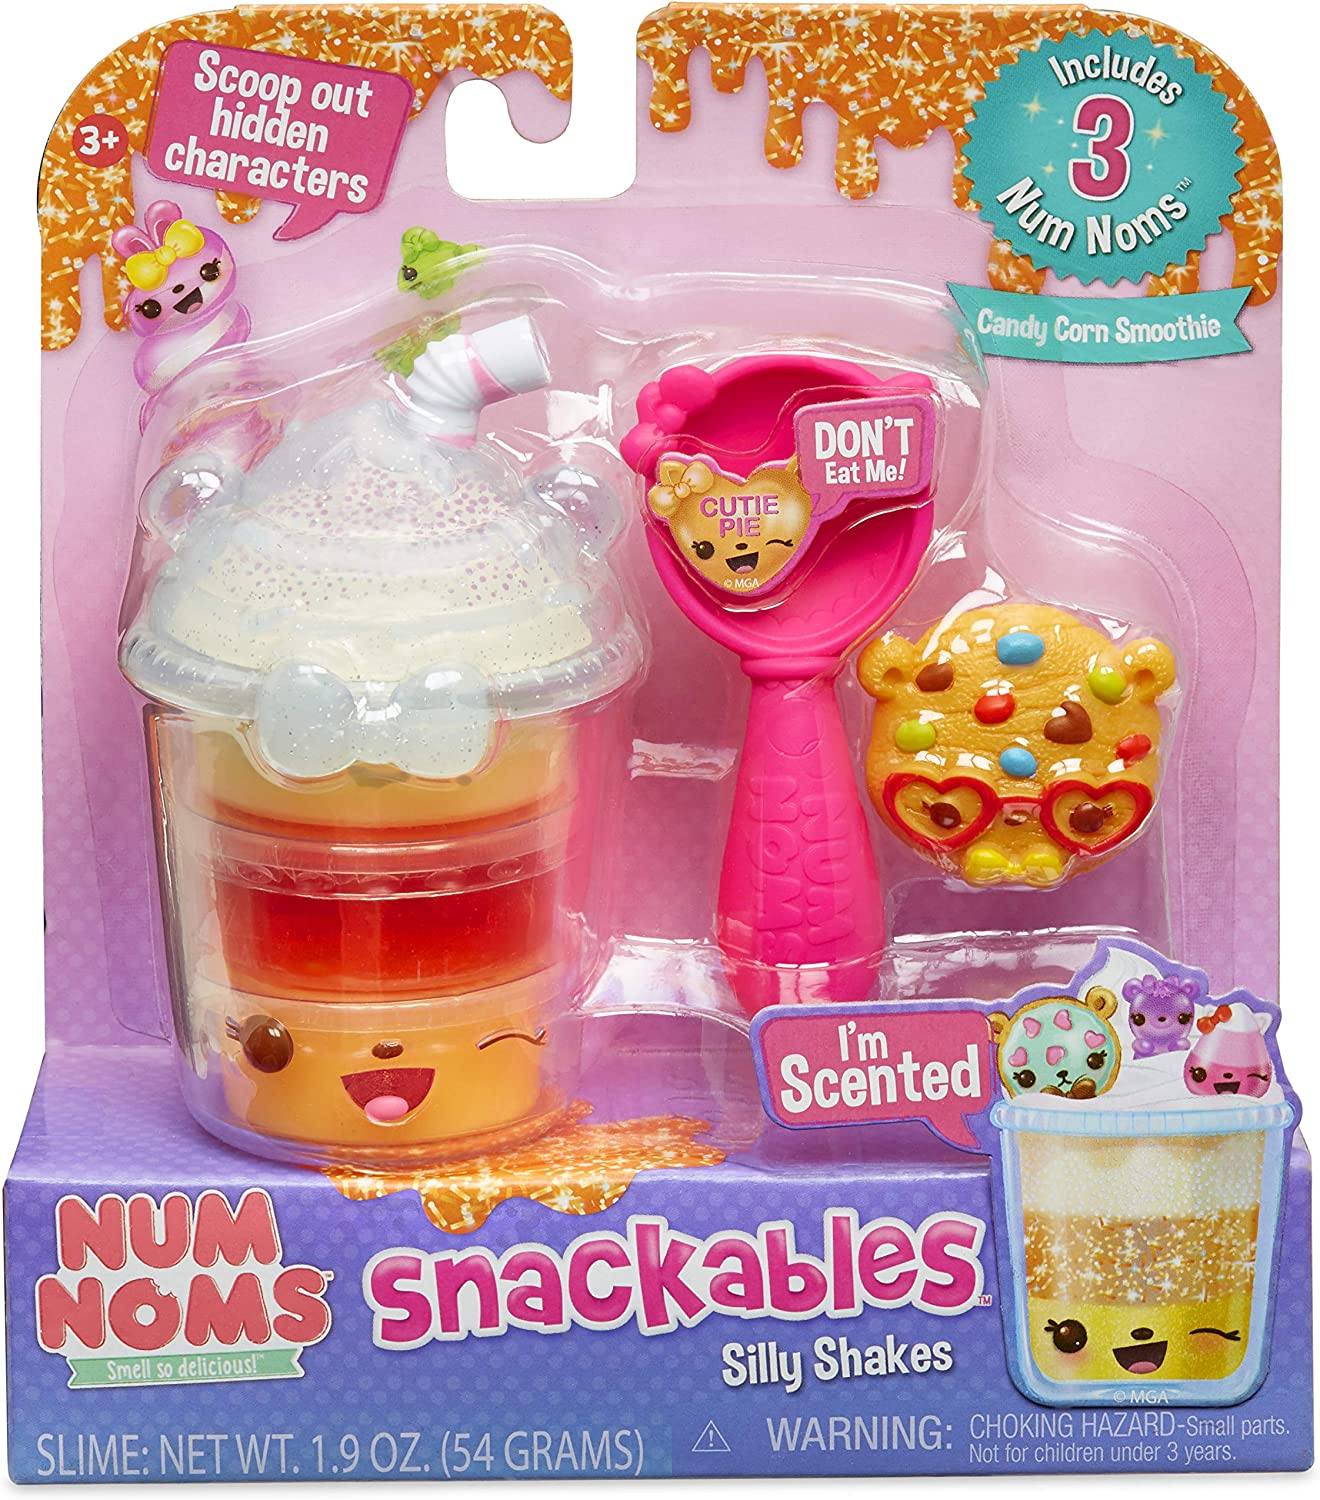 Num Noms Snackables Silly Shakes- Candy Corn Smoothie, Multicolor